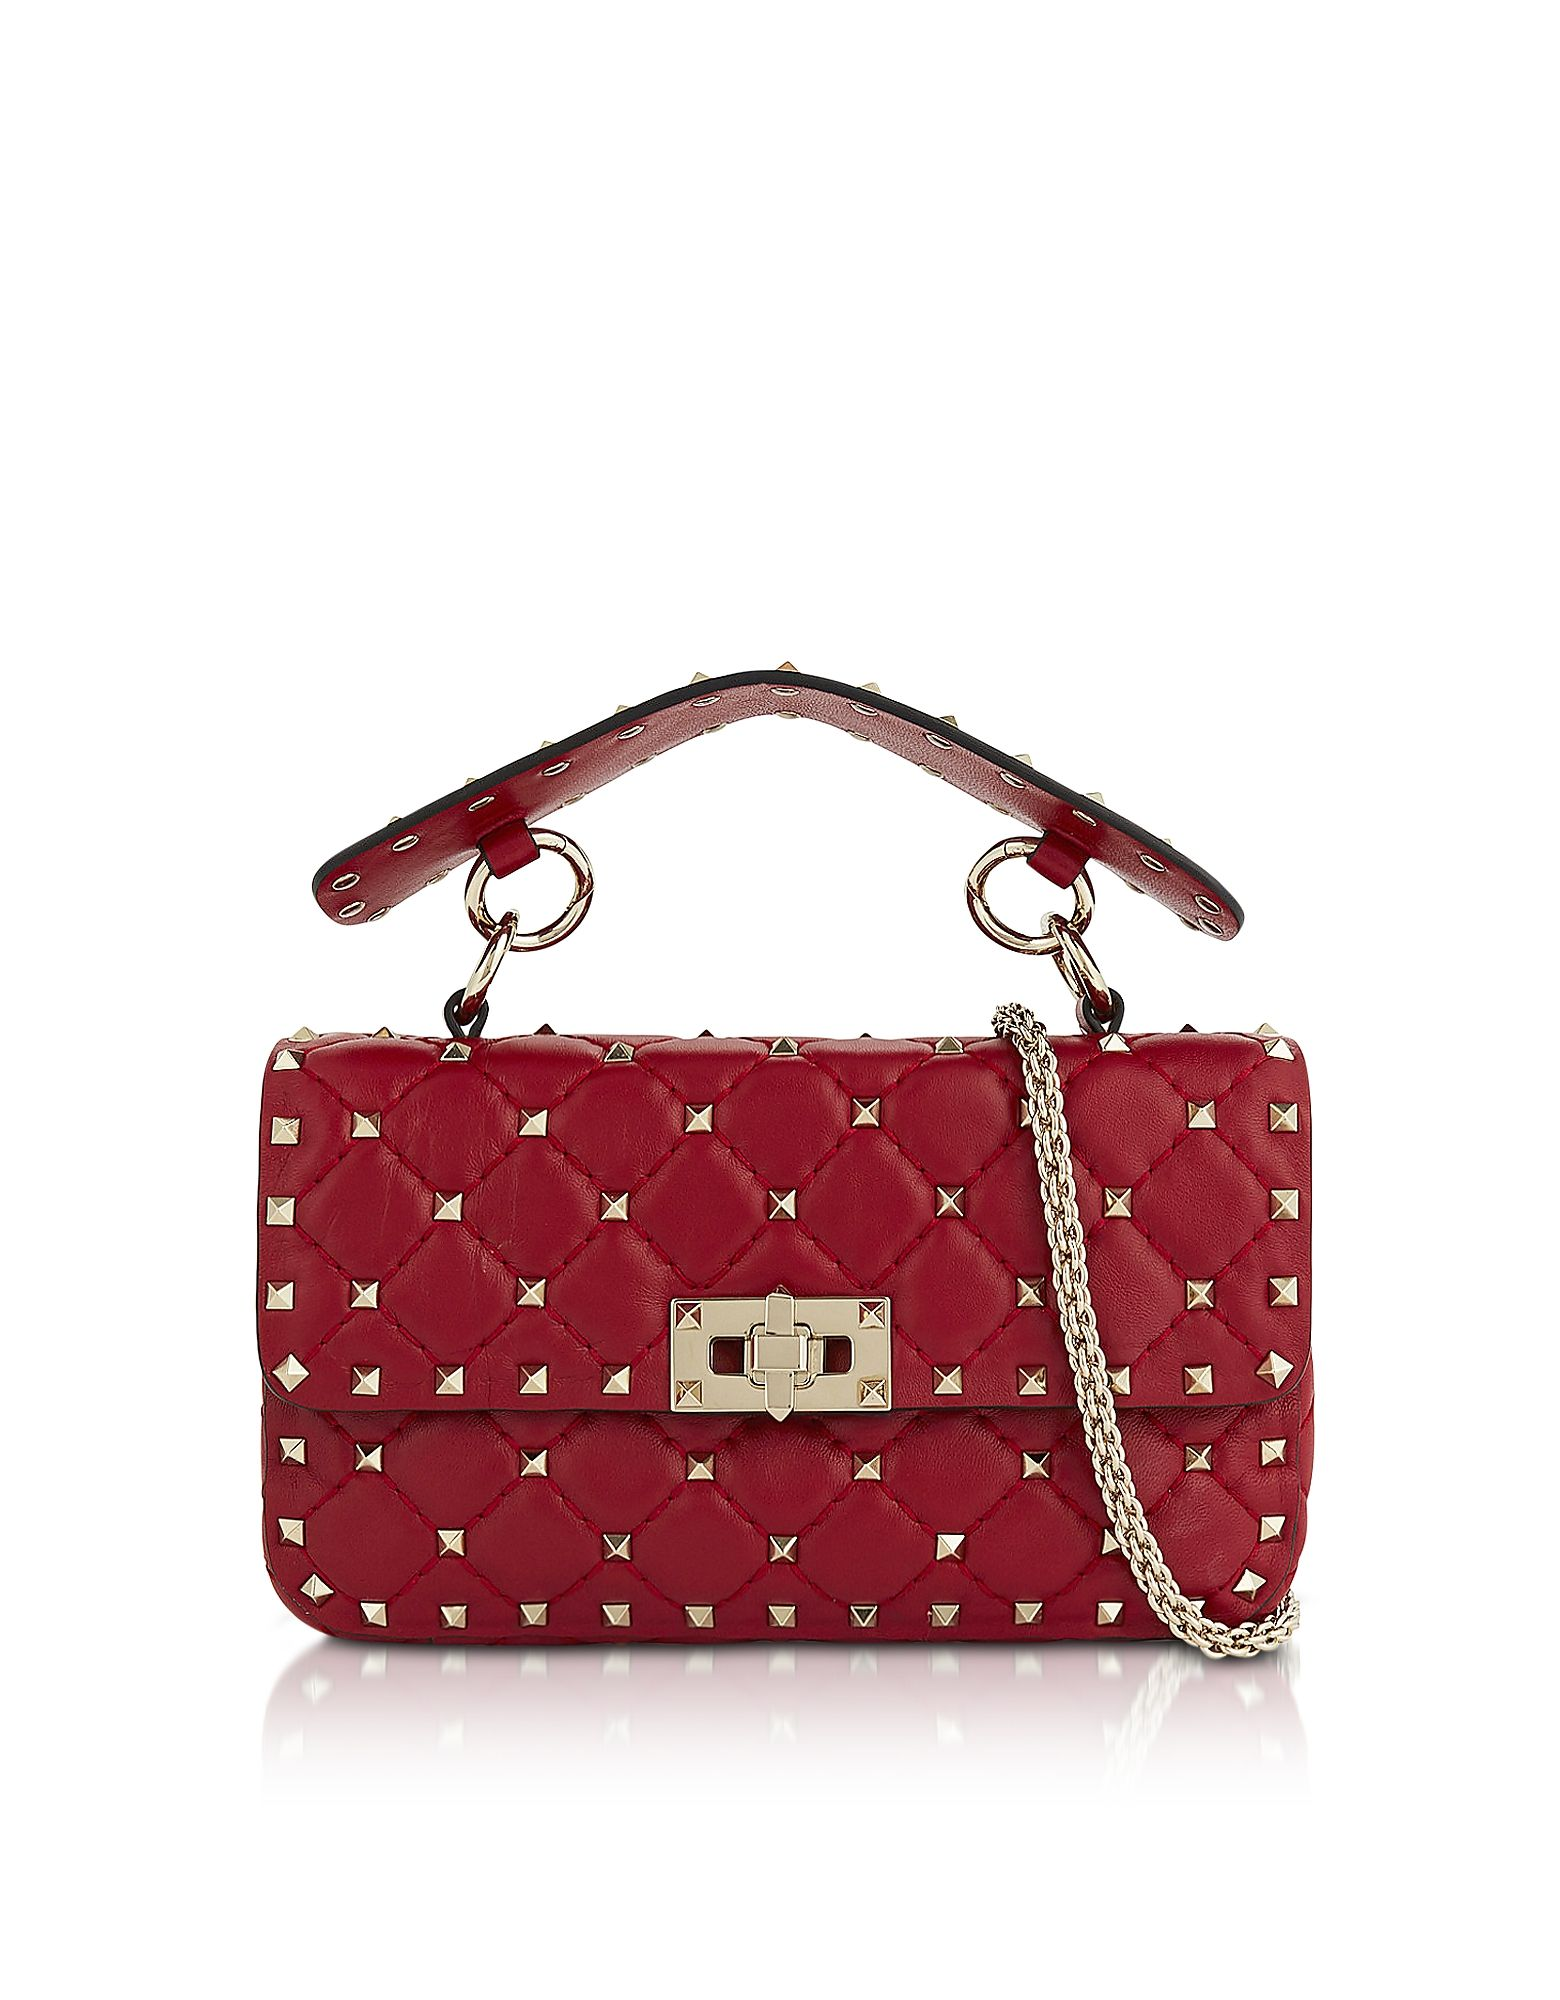 65e456a48a2 VALENTINO RED QUILTED LEATHER ROCKSTUD SPIKE SMALL SHOULDER BAG.  valentino   bags  shoulder bags  hand bags  leather  lining